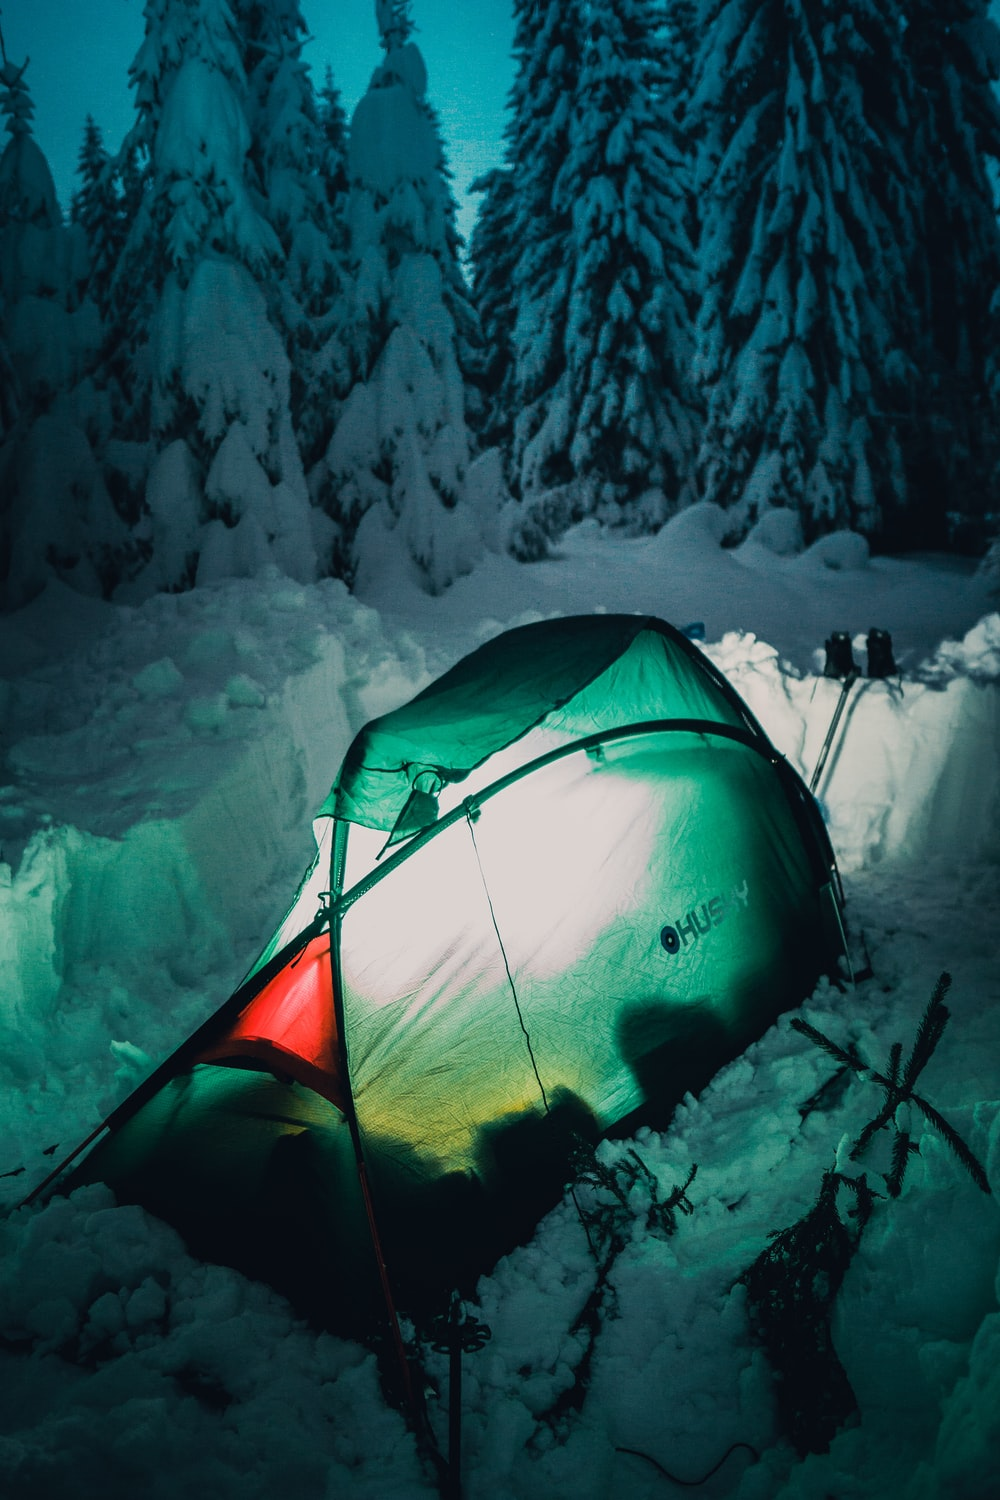 green tent near pine trees during winter